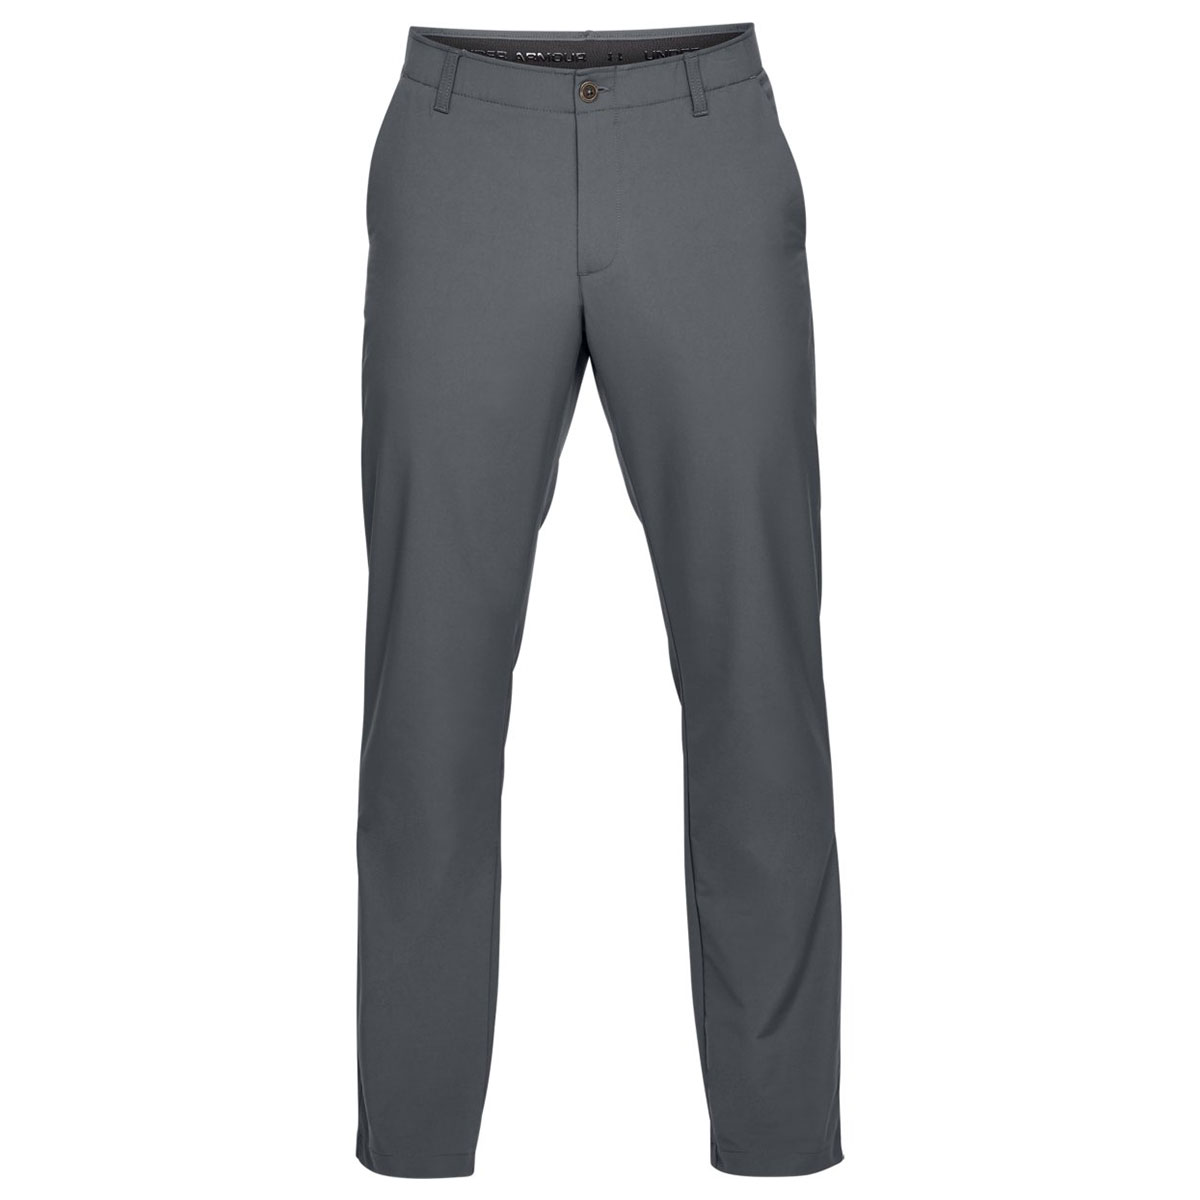 Under-Armour-Mens-2019-EU-Performance-Taper-Soft-Stretch-Golf-Trousers thumbnail 14